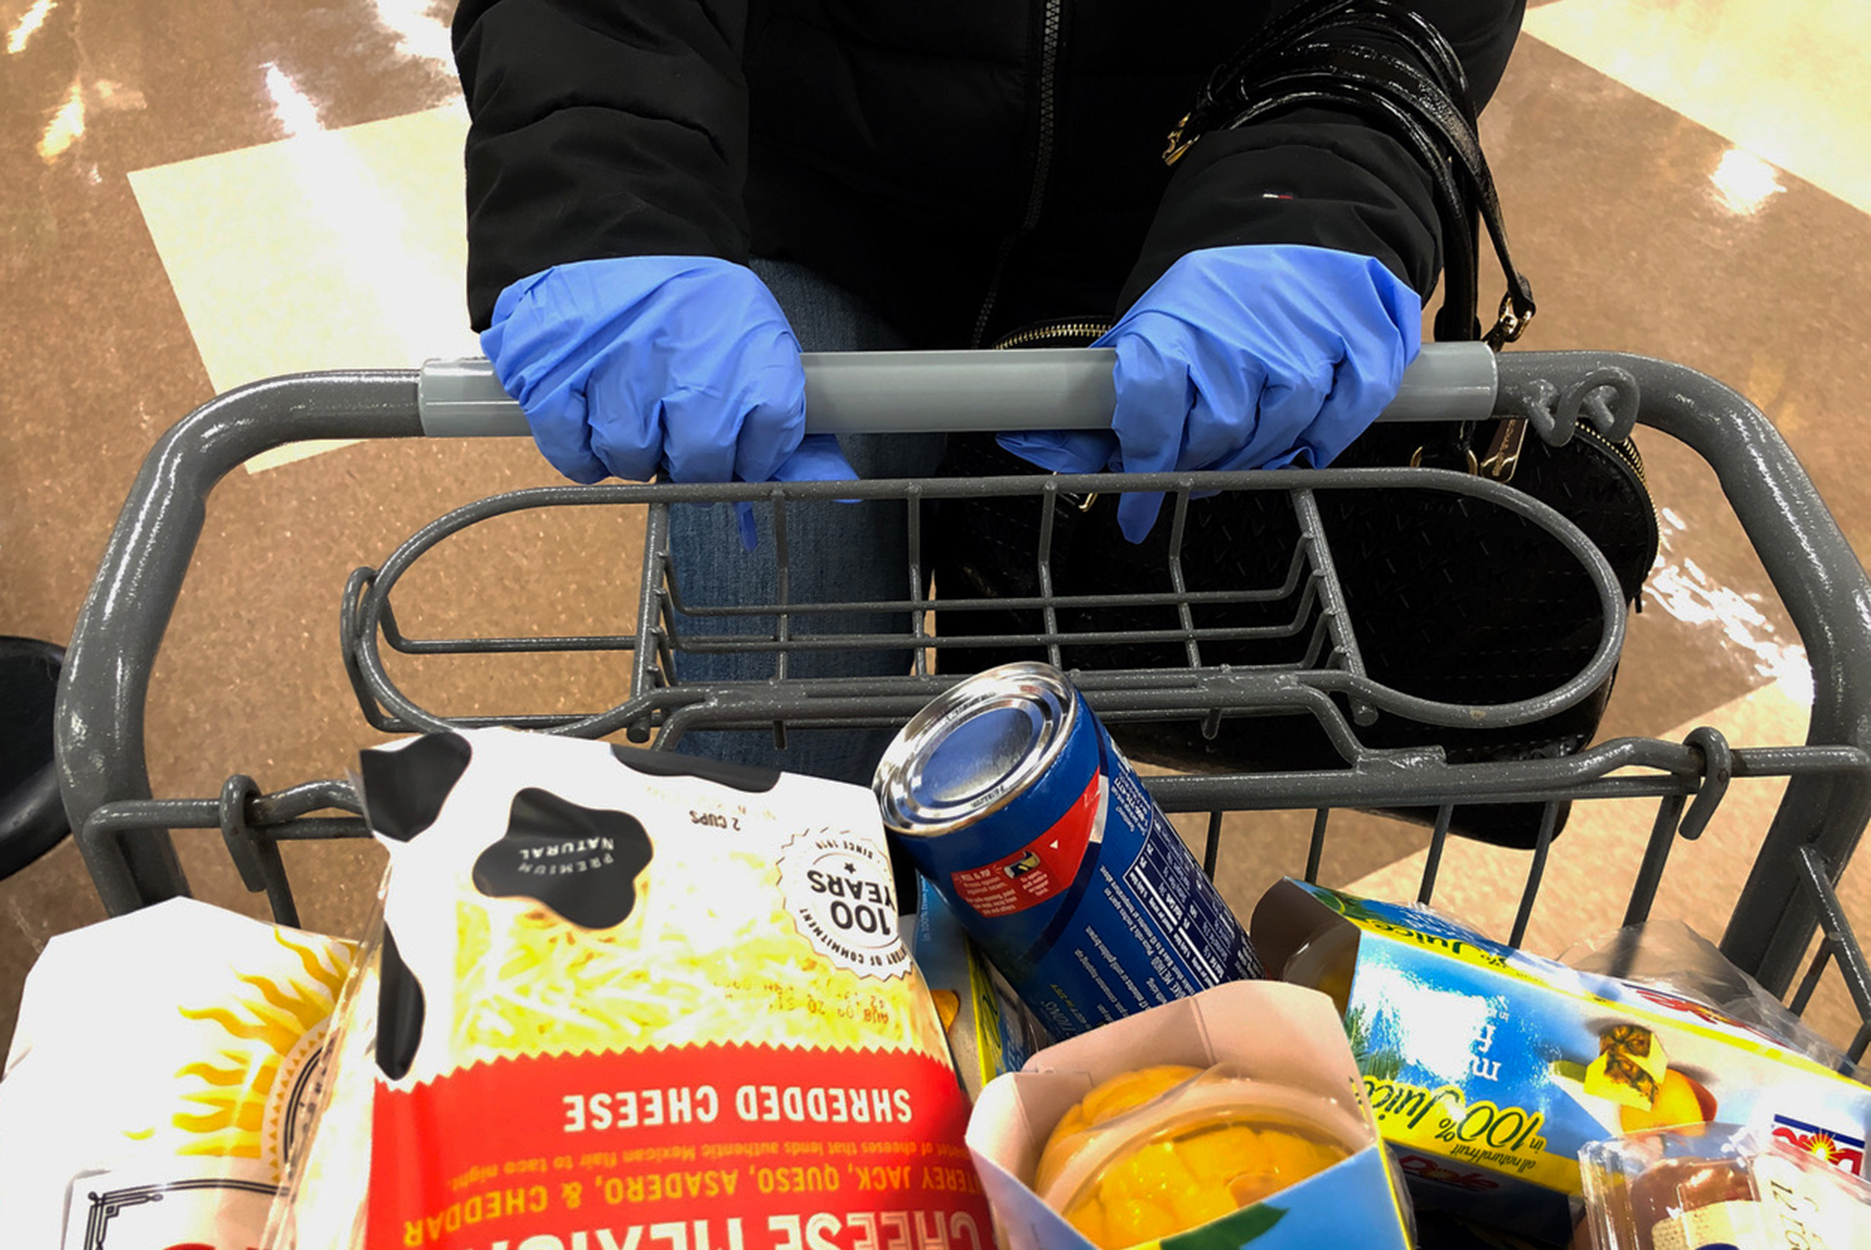 Many customers wear gloves while shopping at a supermarket in Saugus, Massachusetts on March 13, 2020. - Supermarkets and shops around Boston have been emptied by customers in fear of Covid-19.